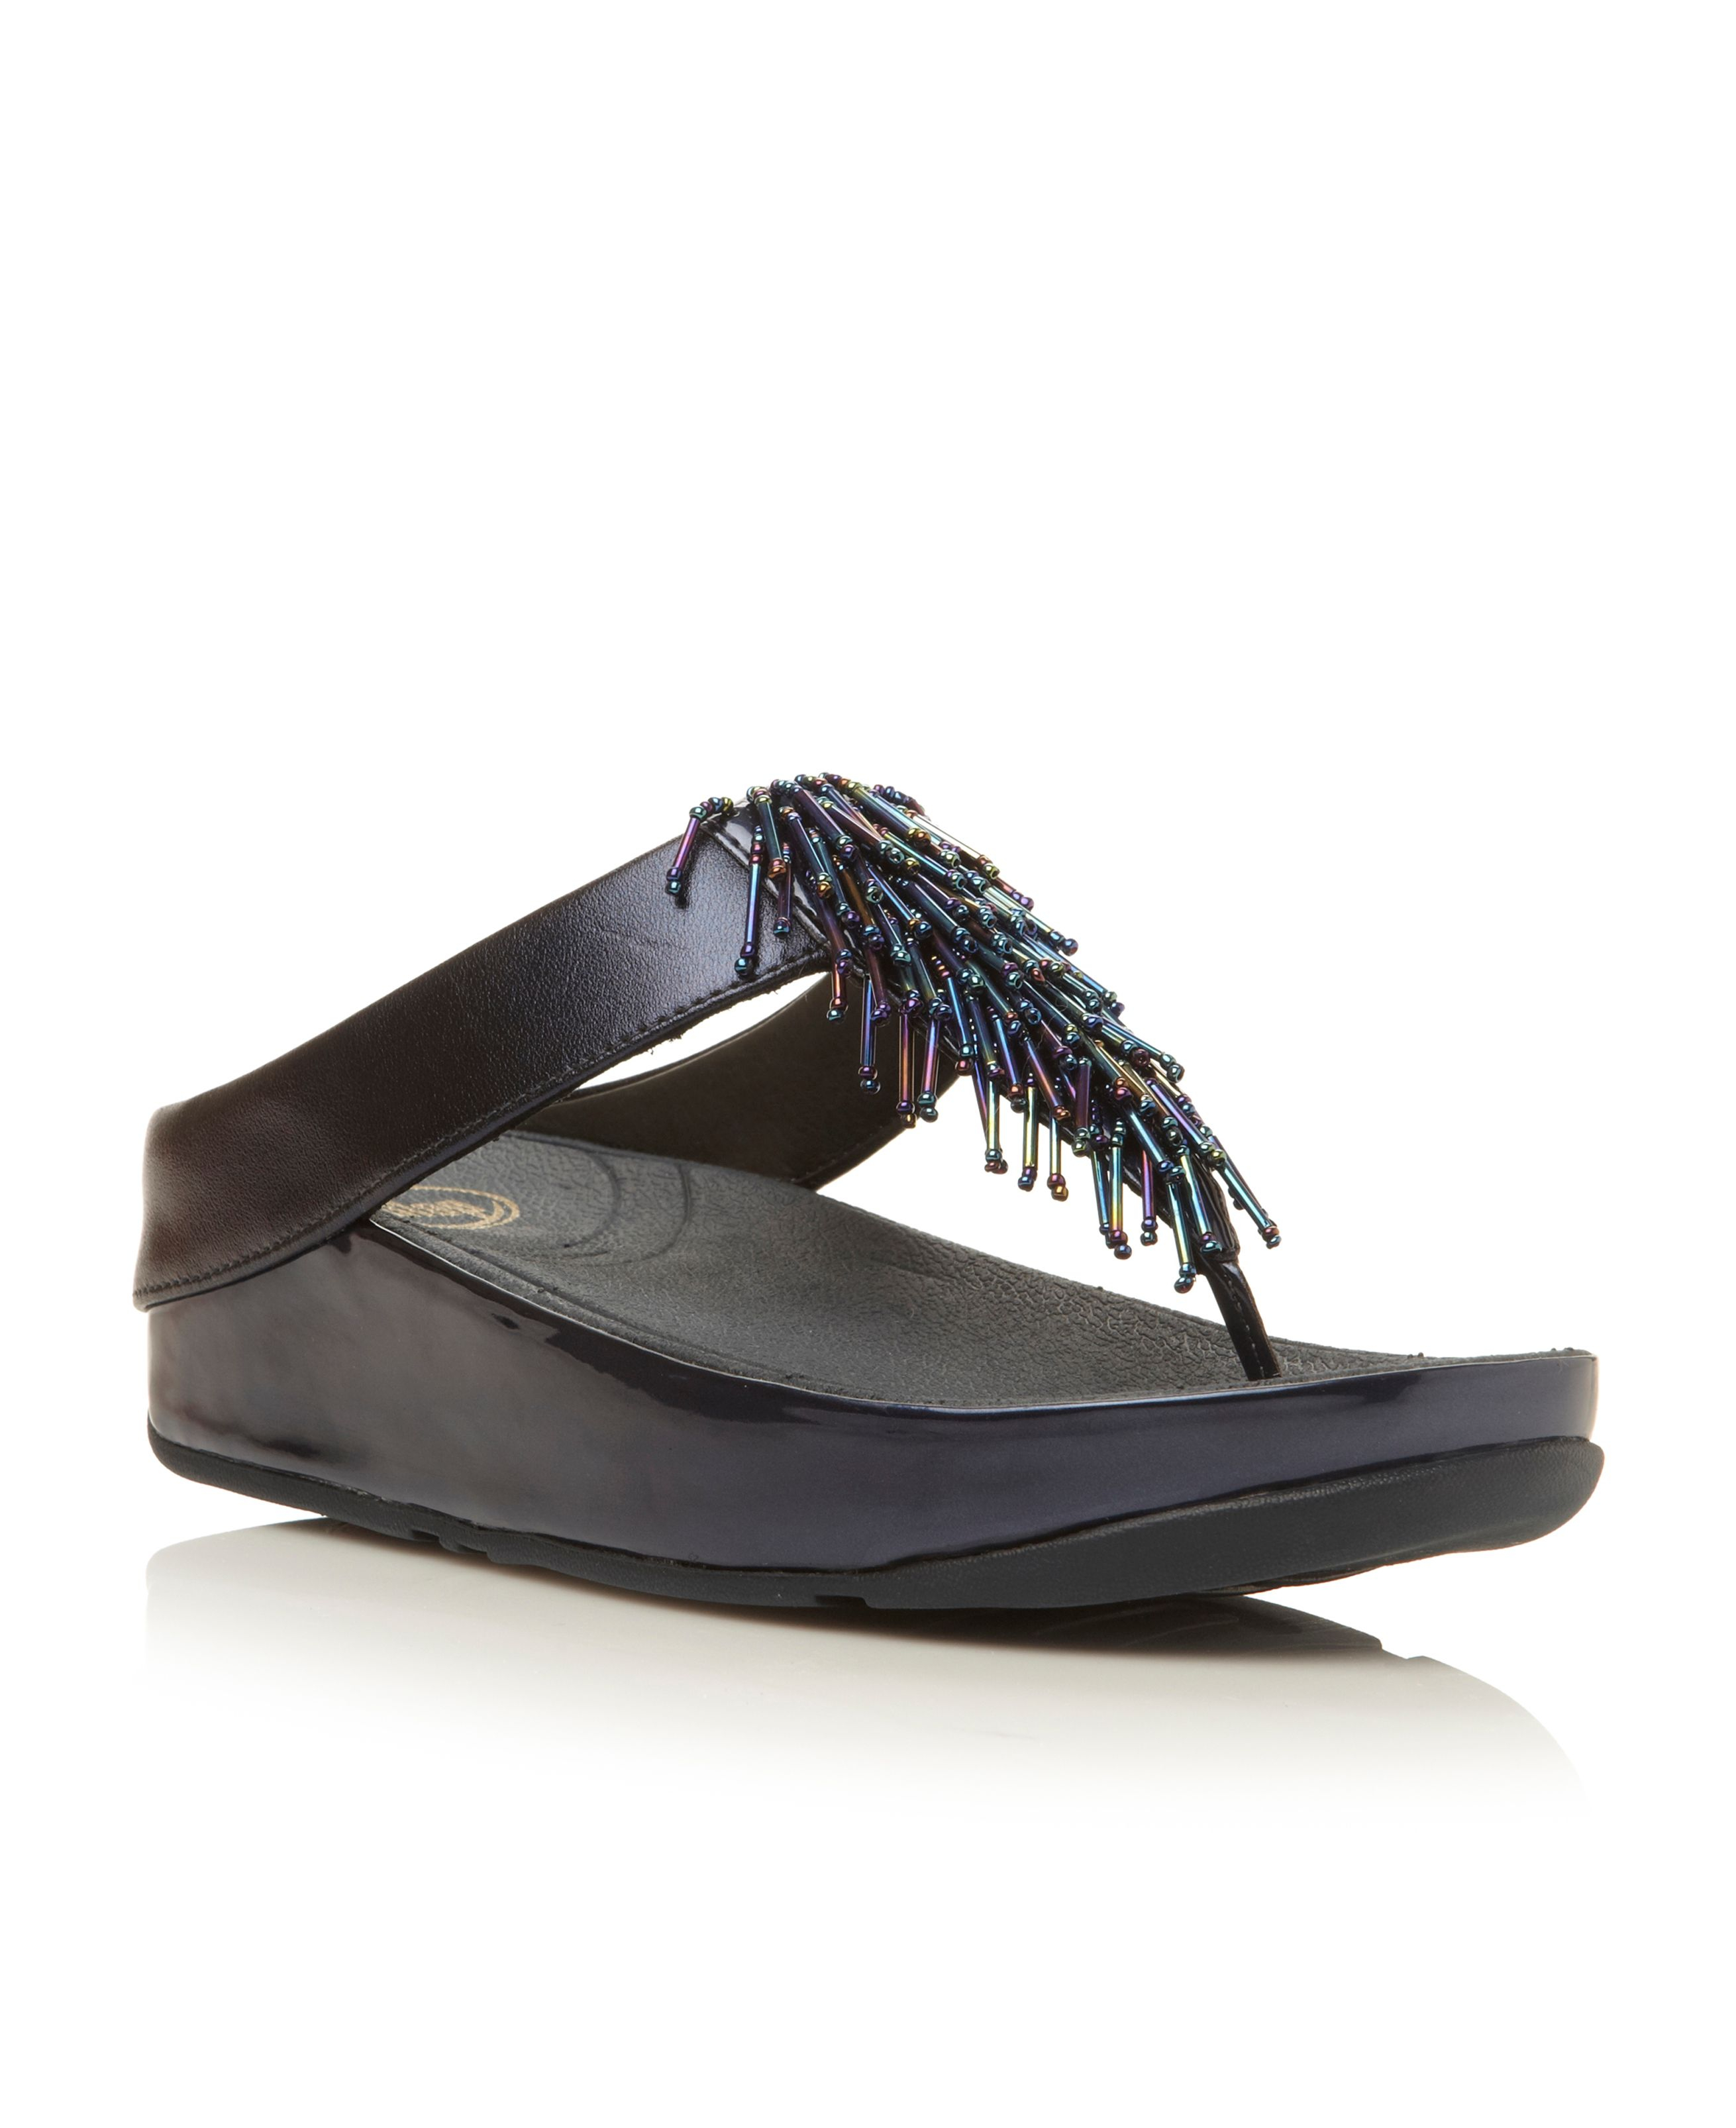 77c992be50f8 Fitflop Cha Cha Beaded Fringe Toe Post Sandals